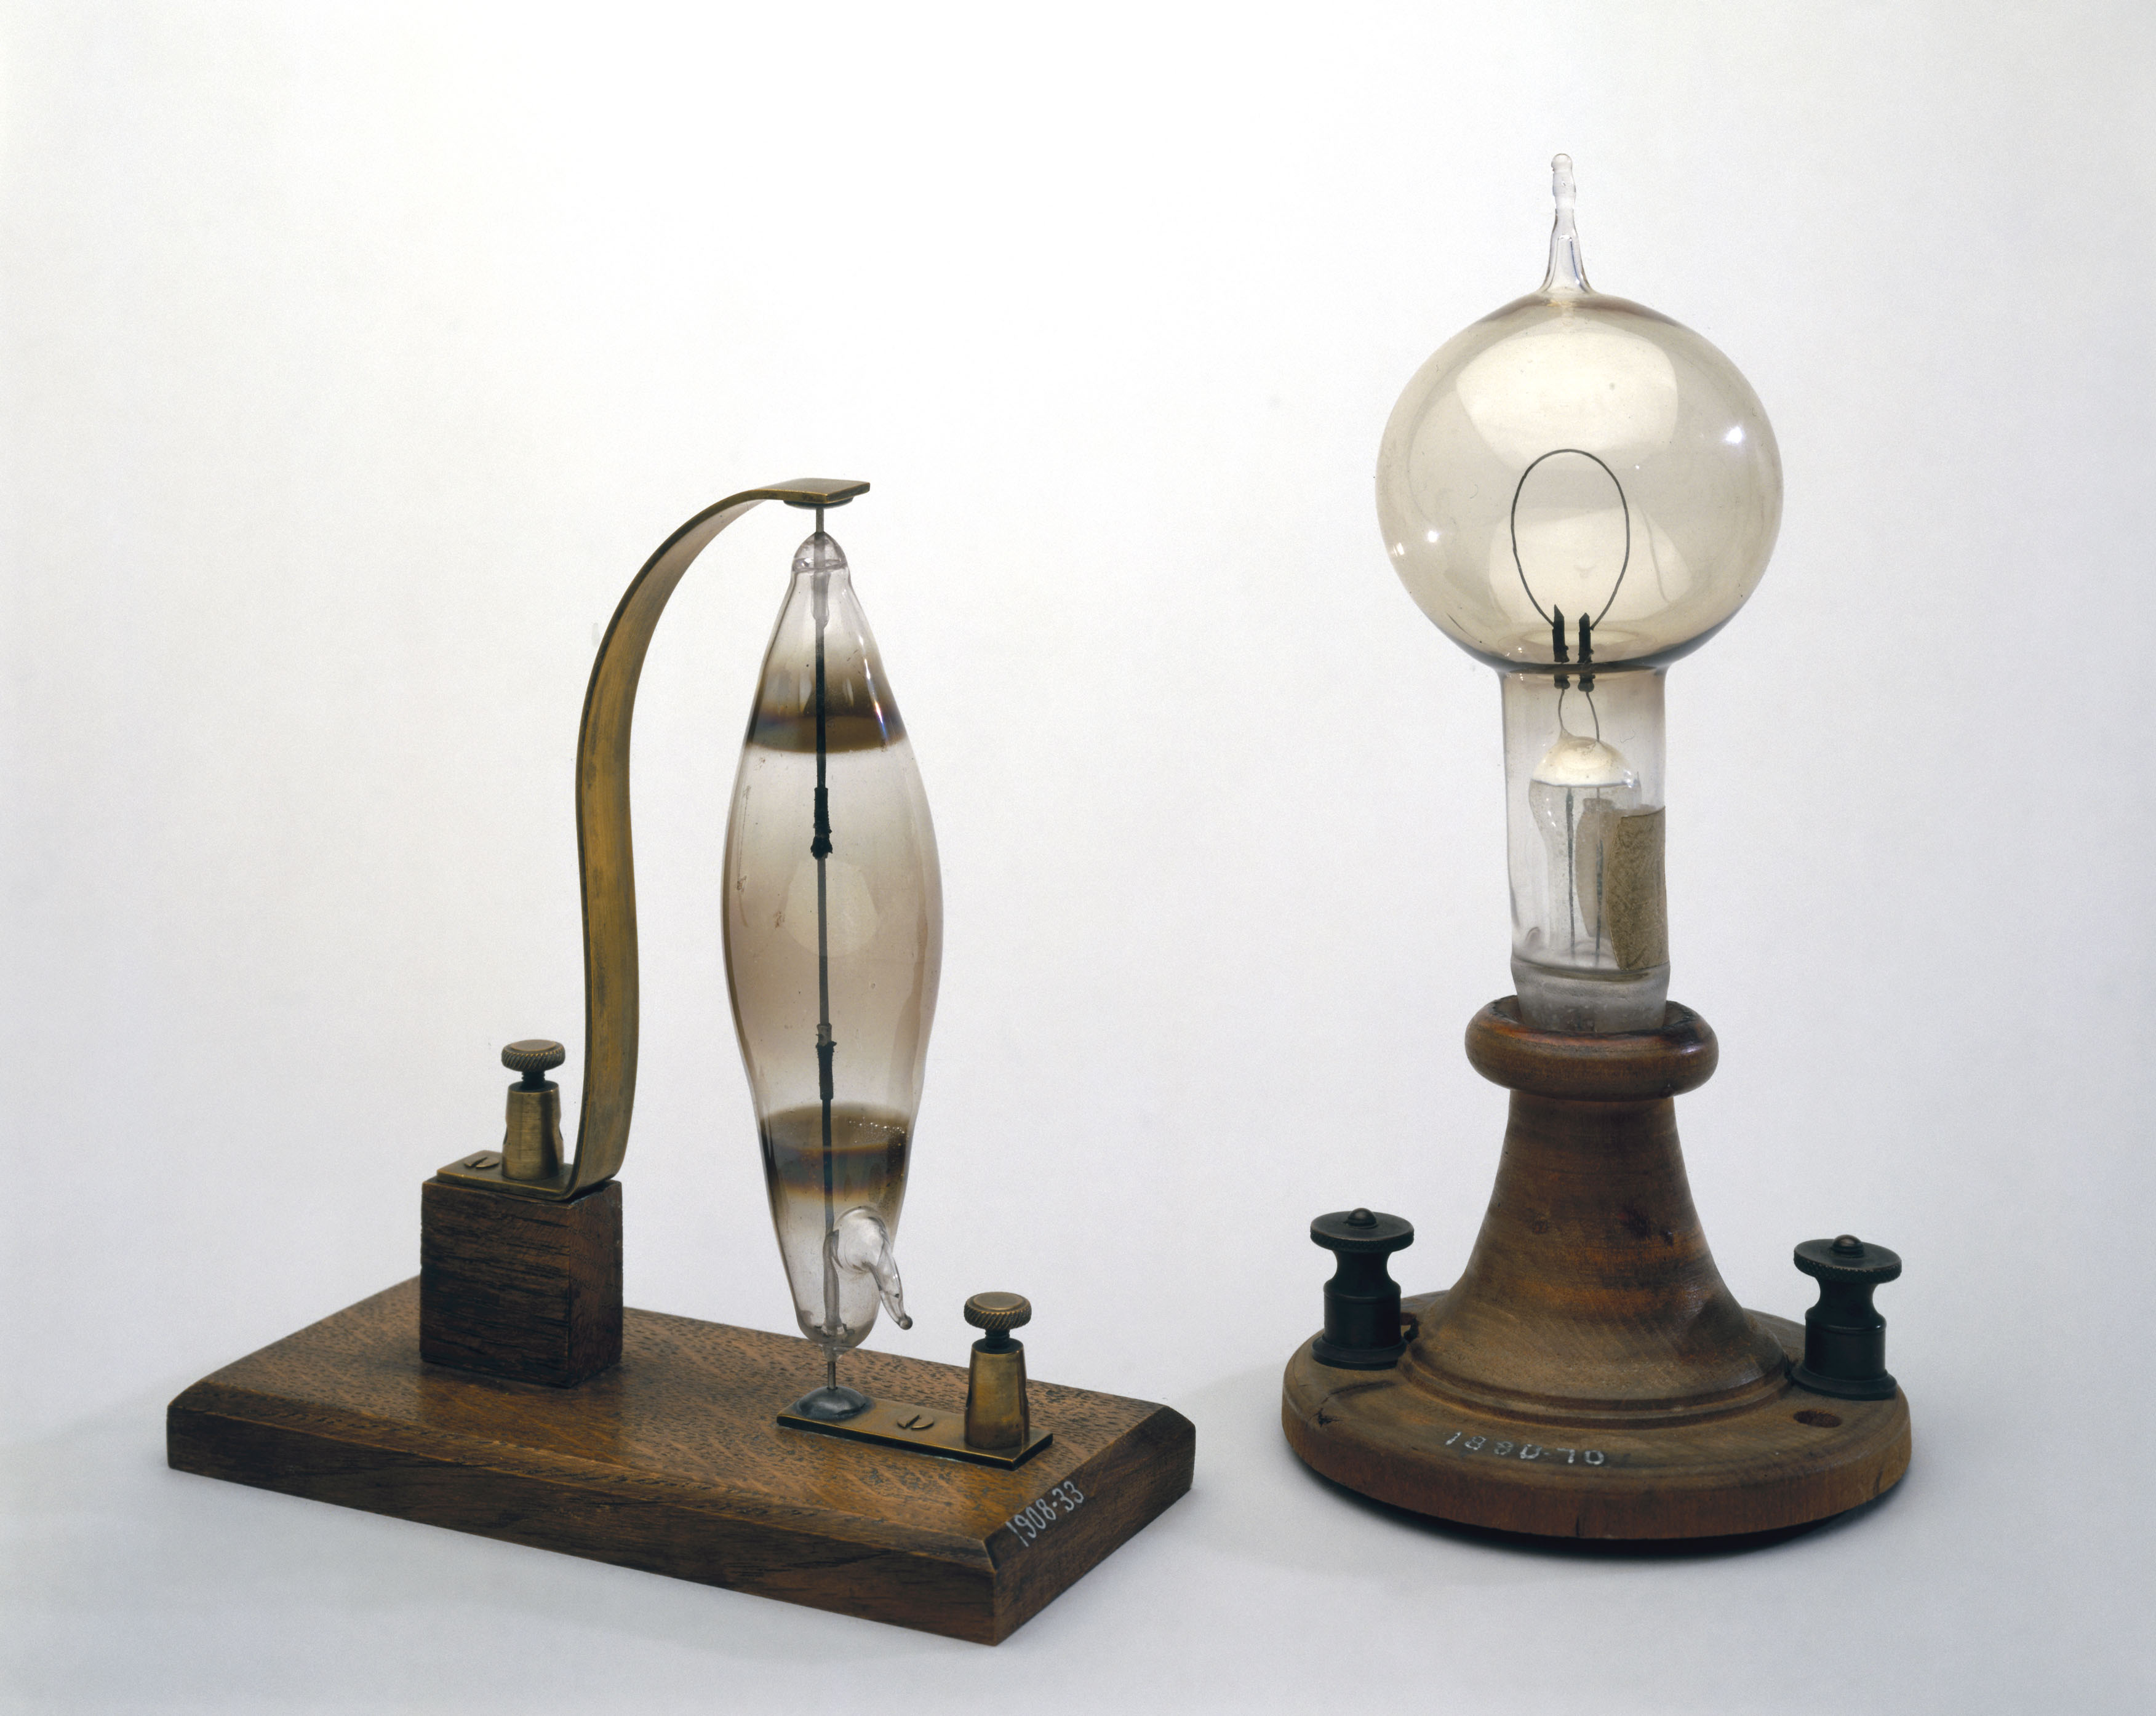 Edison Lampe Electric Filament Lamps Made By Swan Left And Edison